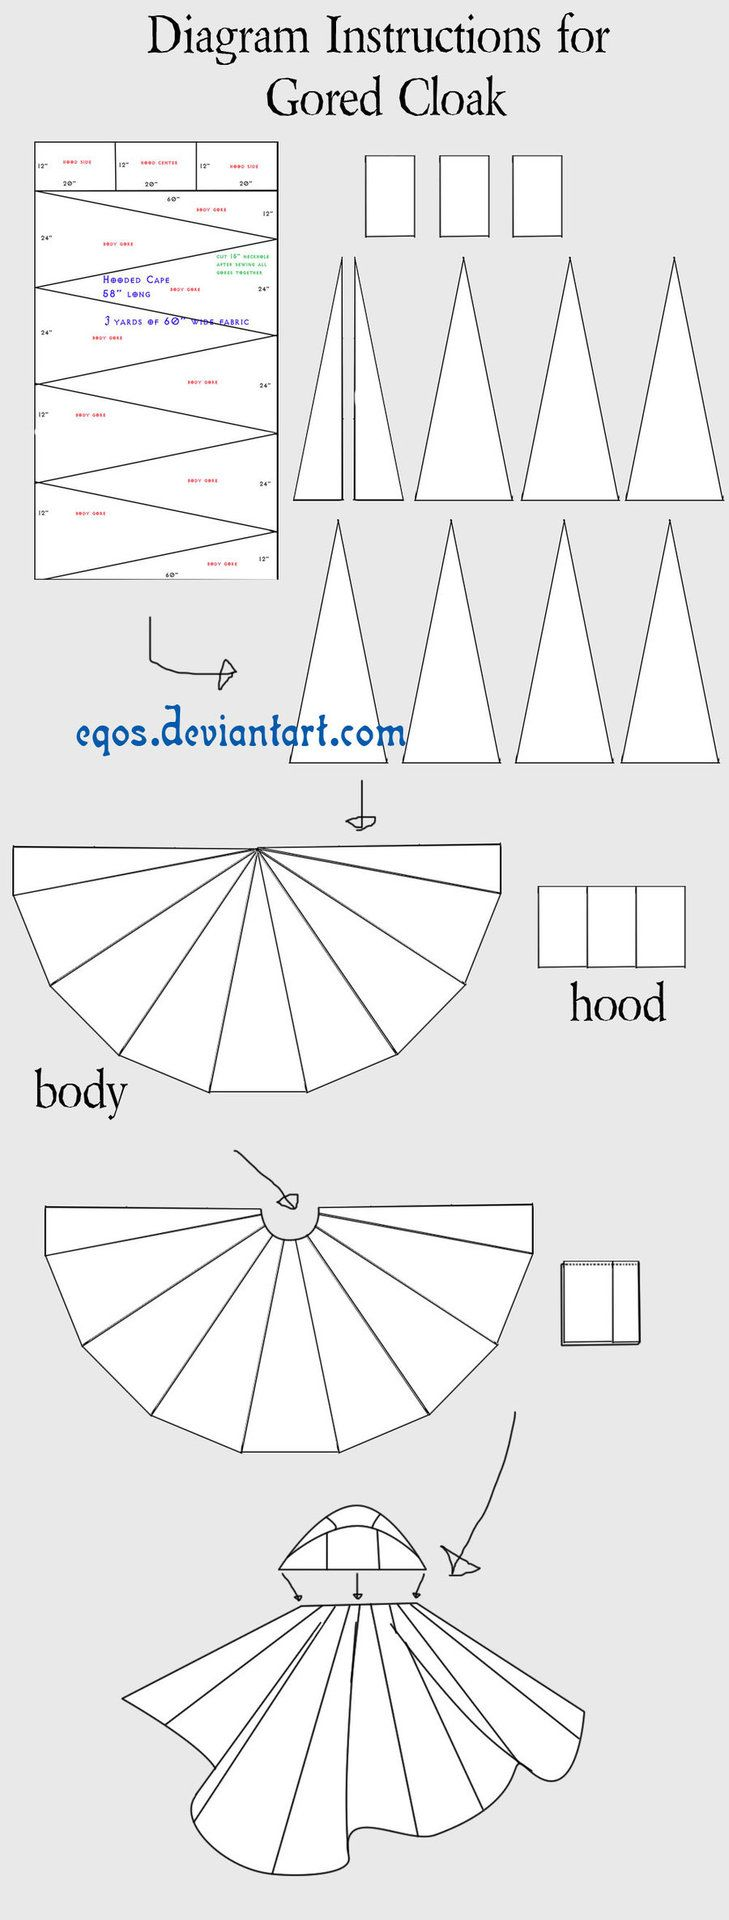 Instructions for Gored Cloak by eqos   General cosplay   Pinterest ...